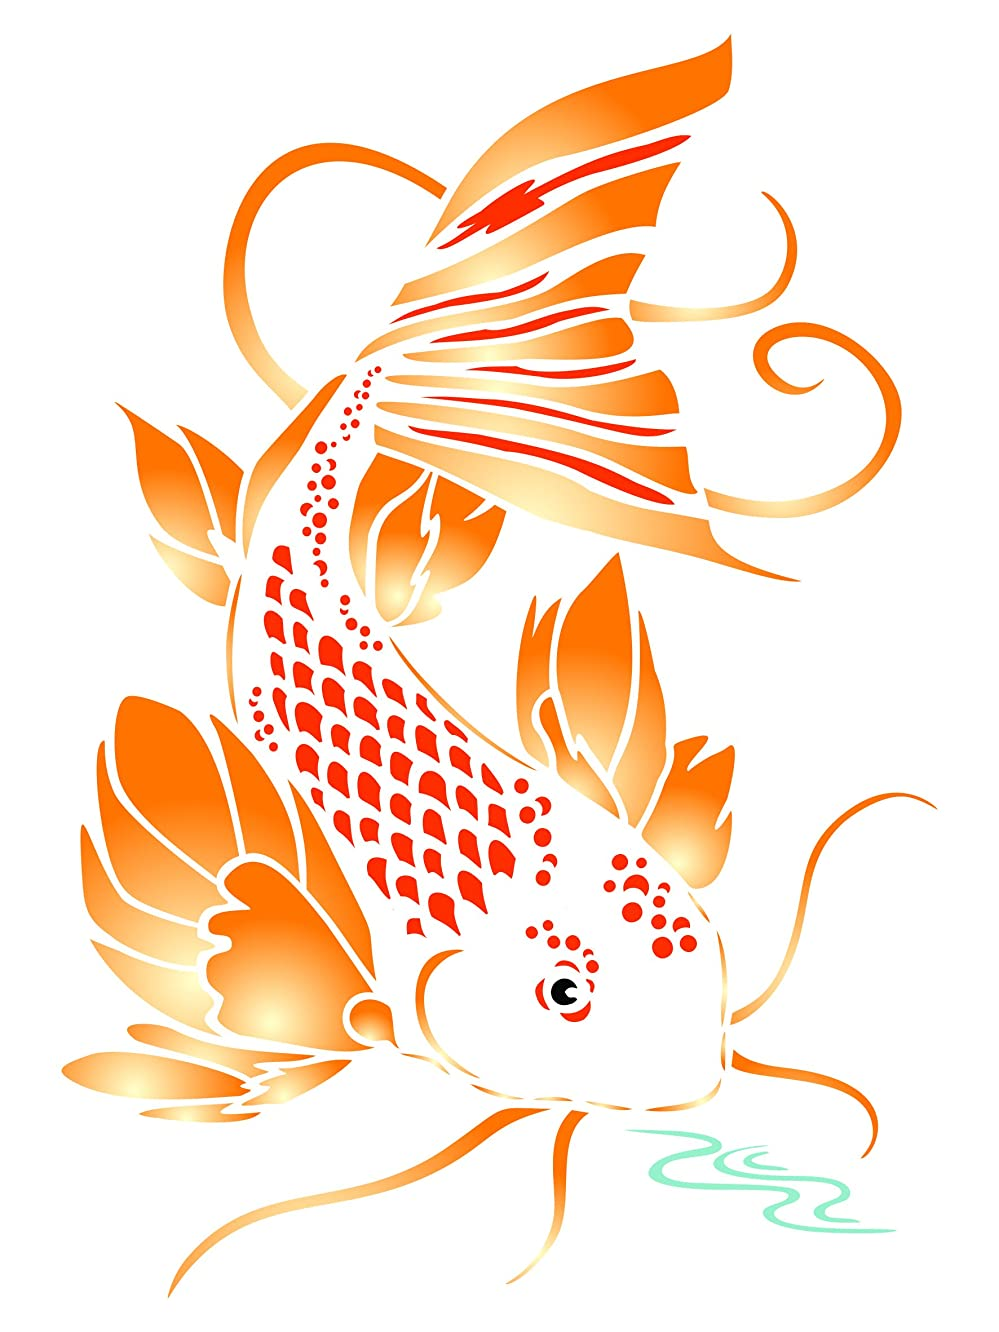 Koi Stencil - 8 x 11.5 inch (L) - Reusable Asian Oriental Carp Fish Animal Pond Wall Stencil Template - Use on Paper Projects Scrapbook Journal Walls Floors Fabric Furniture Glass Wood etc.